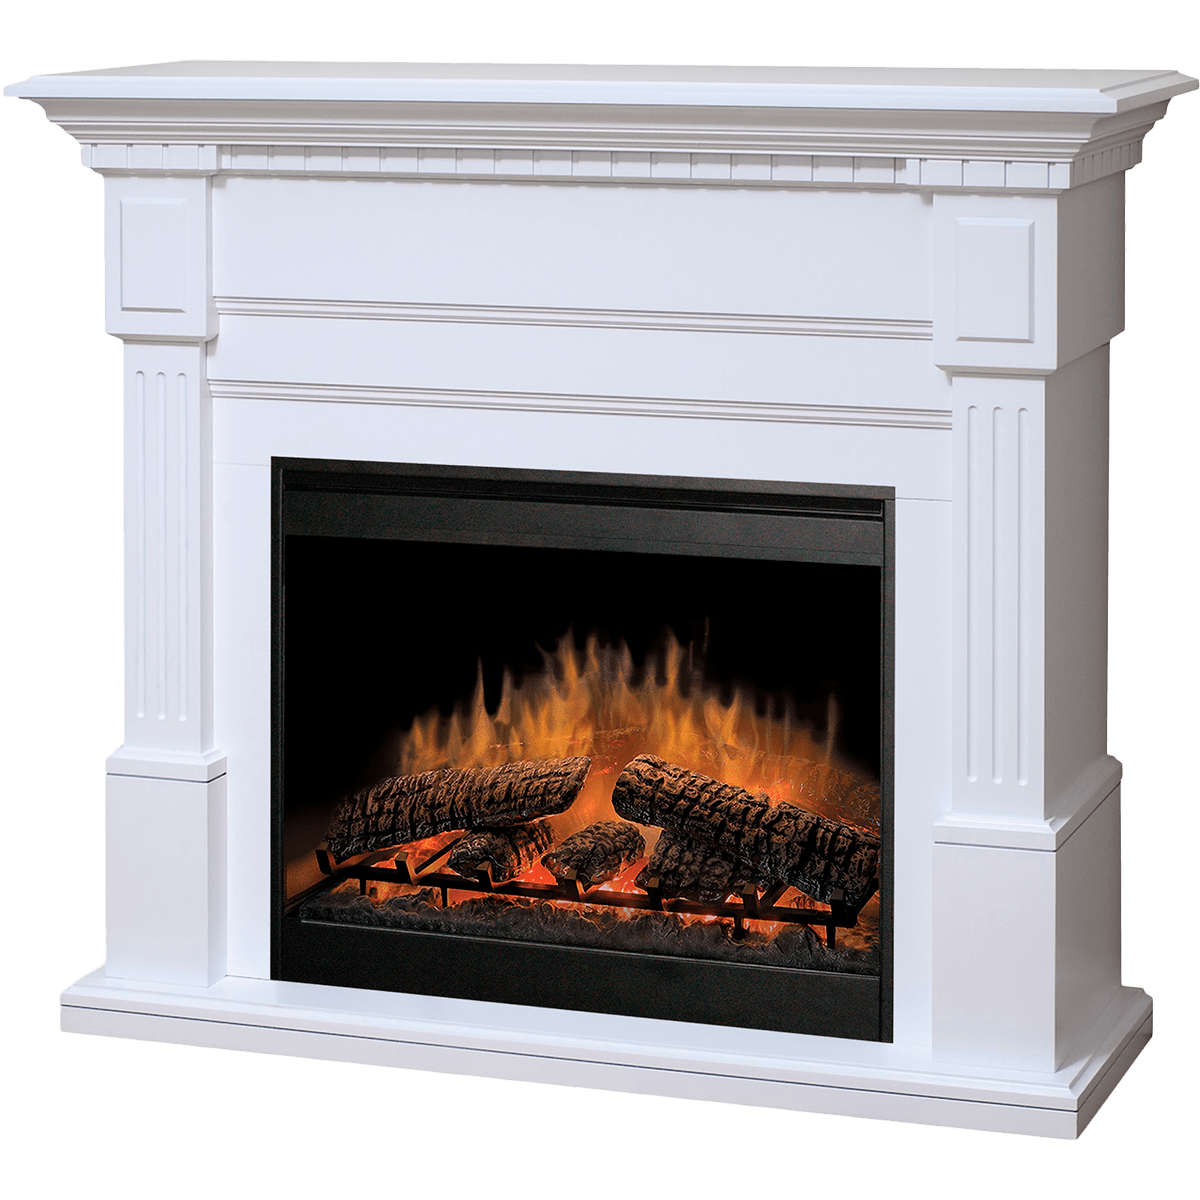 Dimplex Essex Electric Fireplace Free Shipping Sylvane